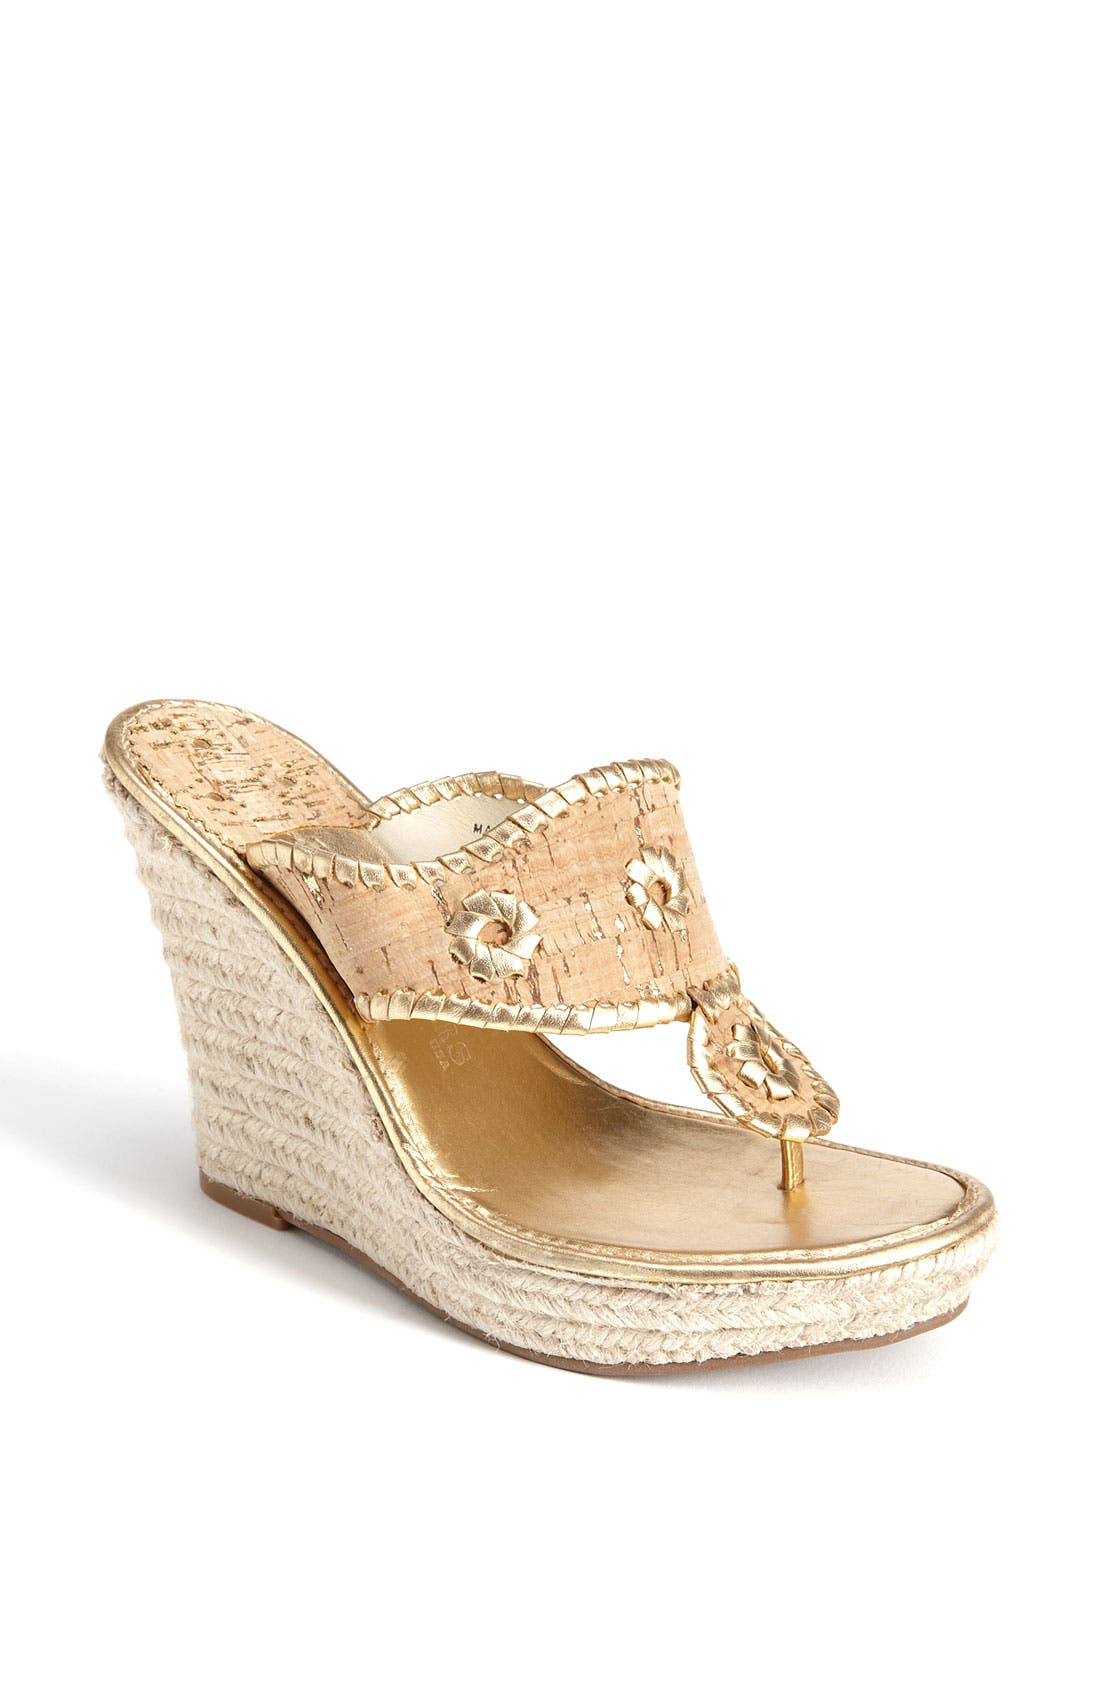 Alternate Image 1 Selected - Jack Rogers 'Marbella' Sandal